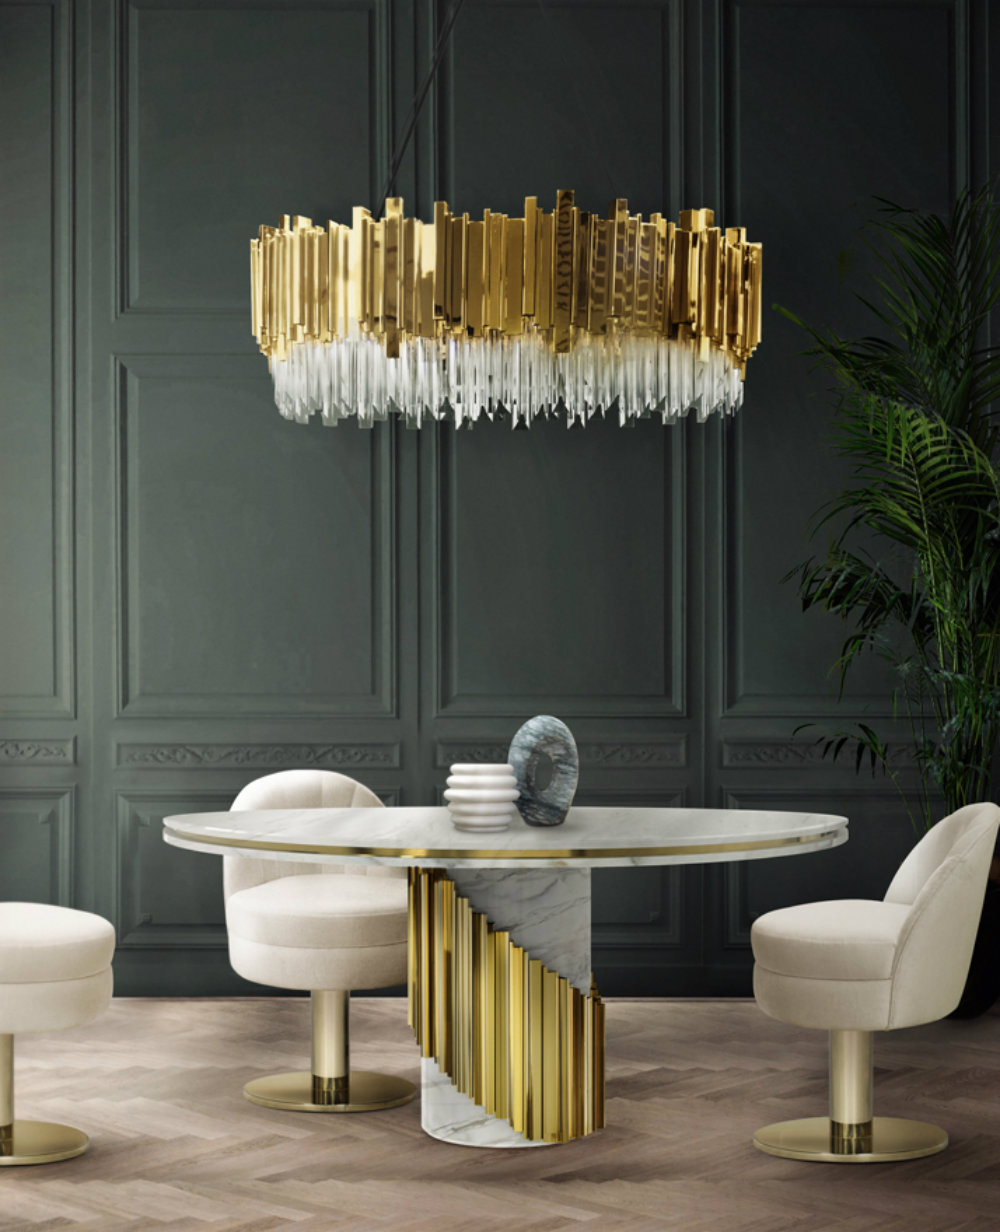 Color Trends 2019: How To Use White & Gold In A Luxury Decor